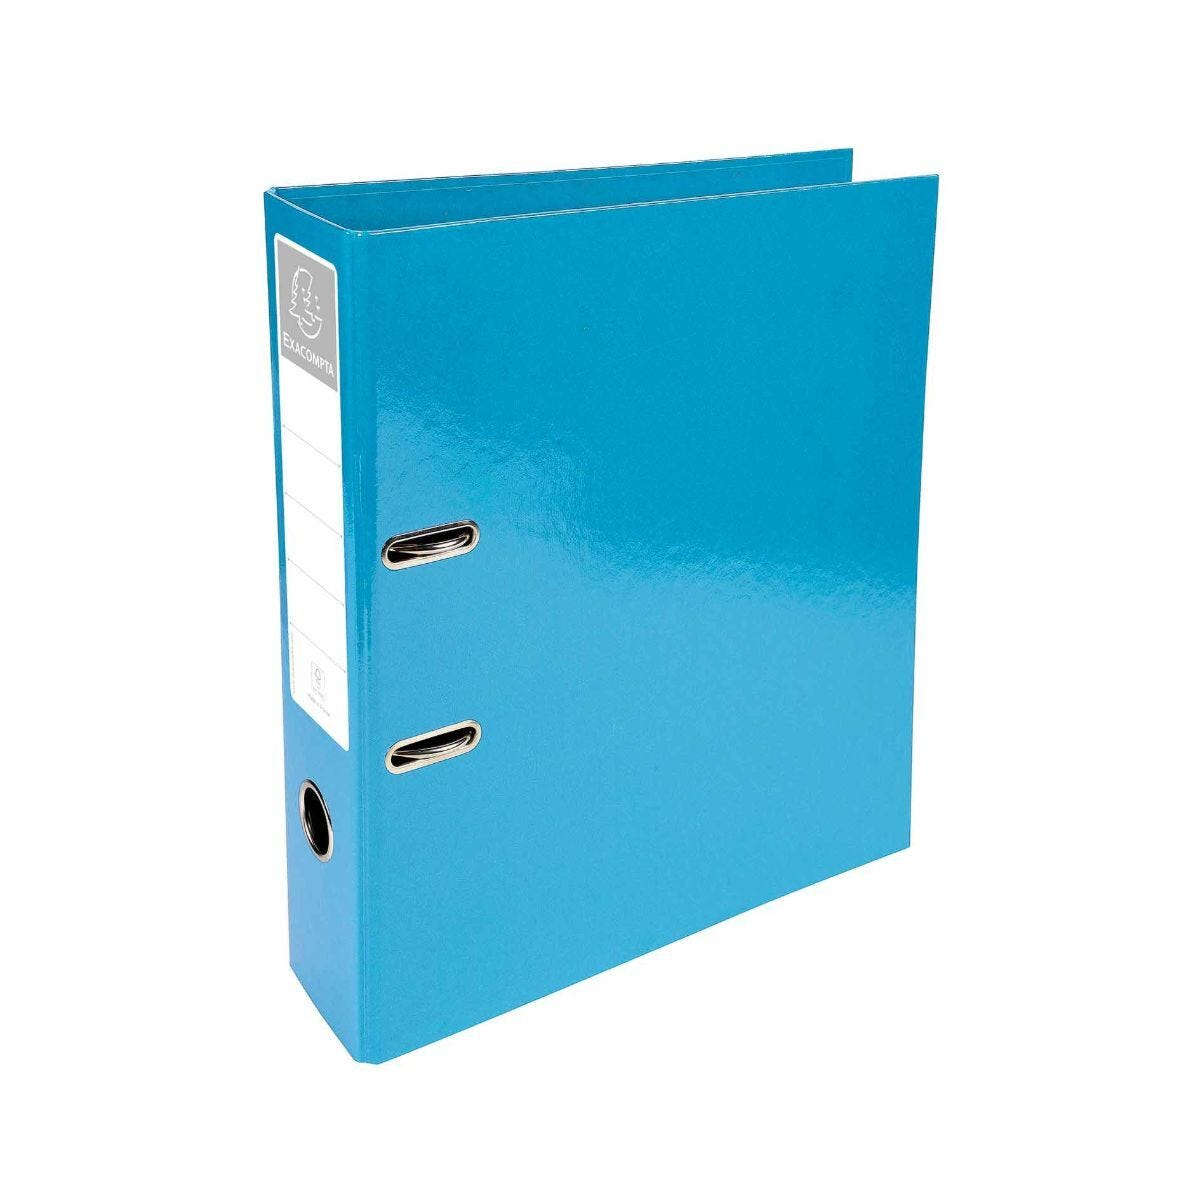 Exacompta Iderama PremTouch Lever Arch File A4 70mm Pack of 10 Light Blue